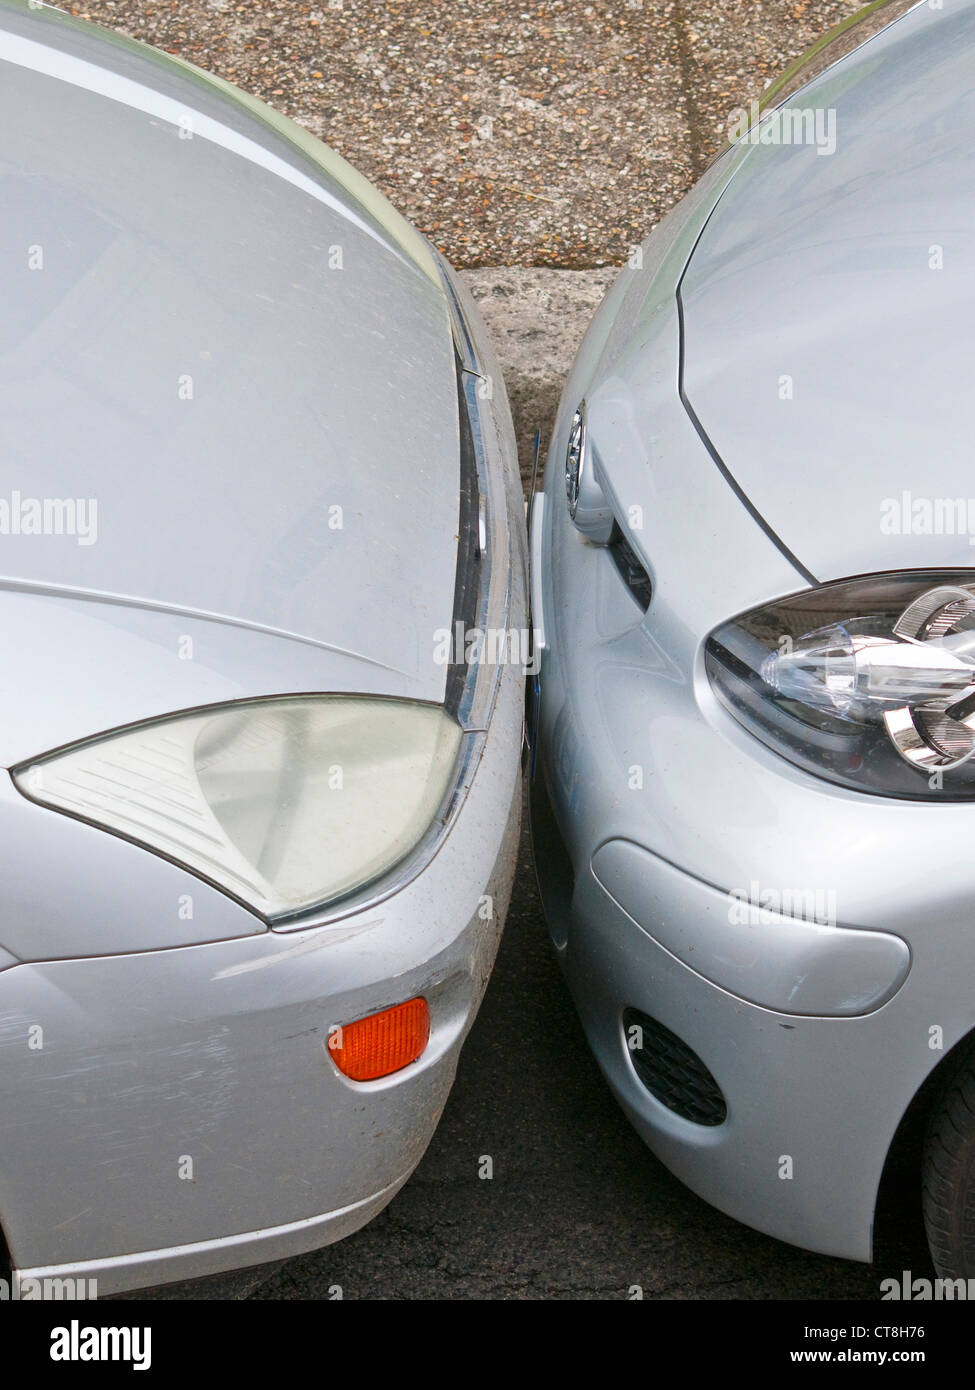 Two cars badly parked bumper to bumper - France. - Stock Image